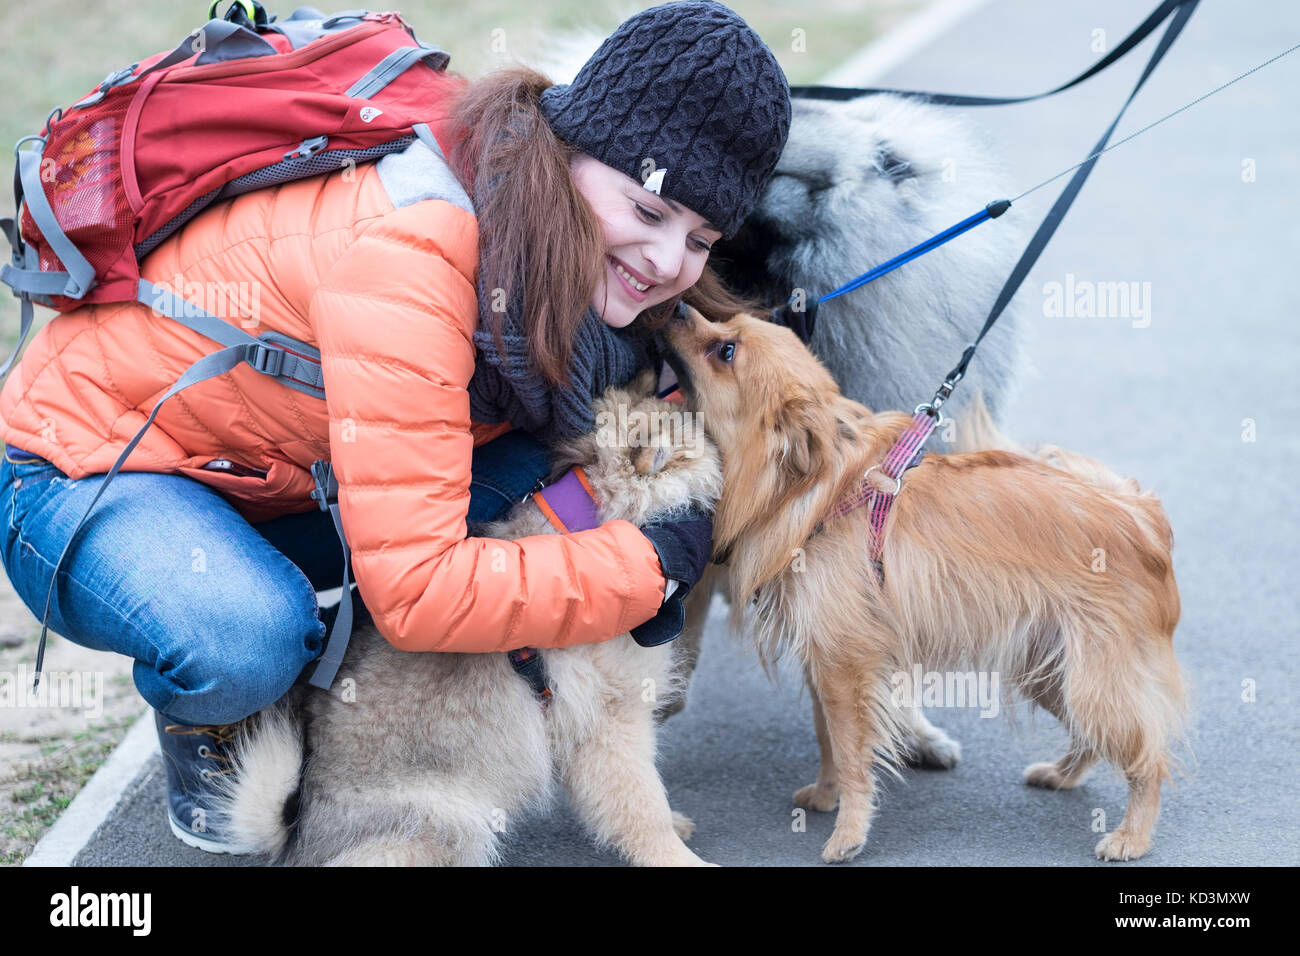 Mid-age beautiful woman hugs and cuddles three dogs - Stock Image